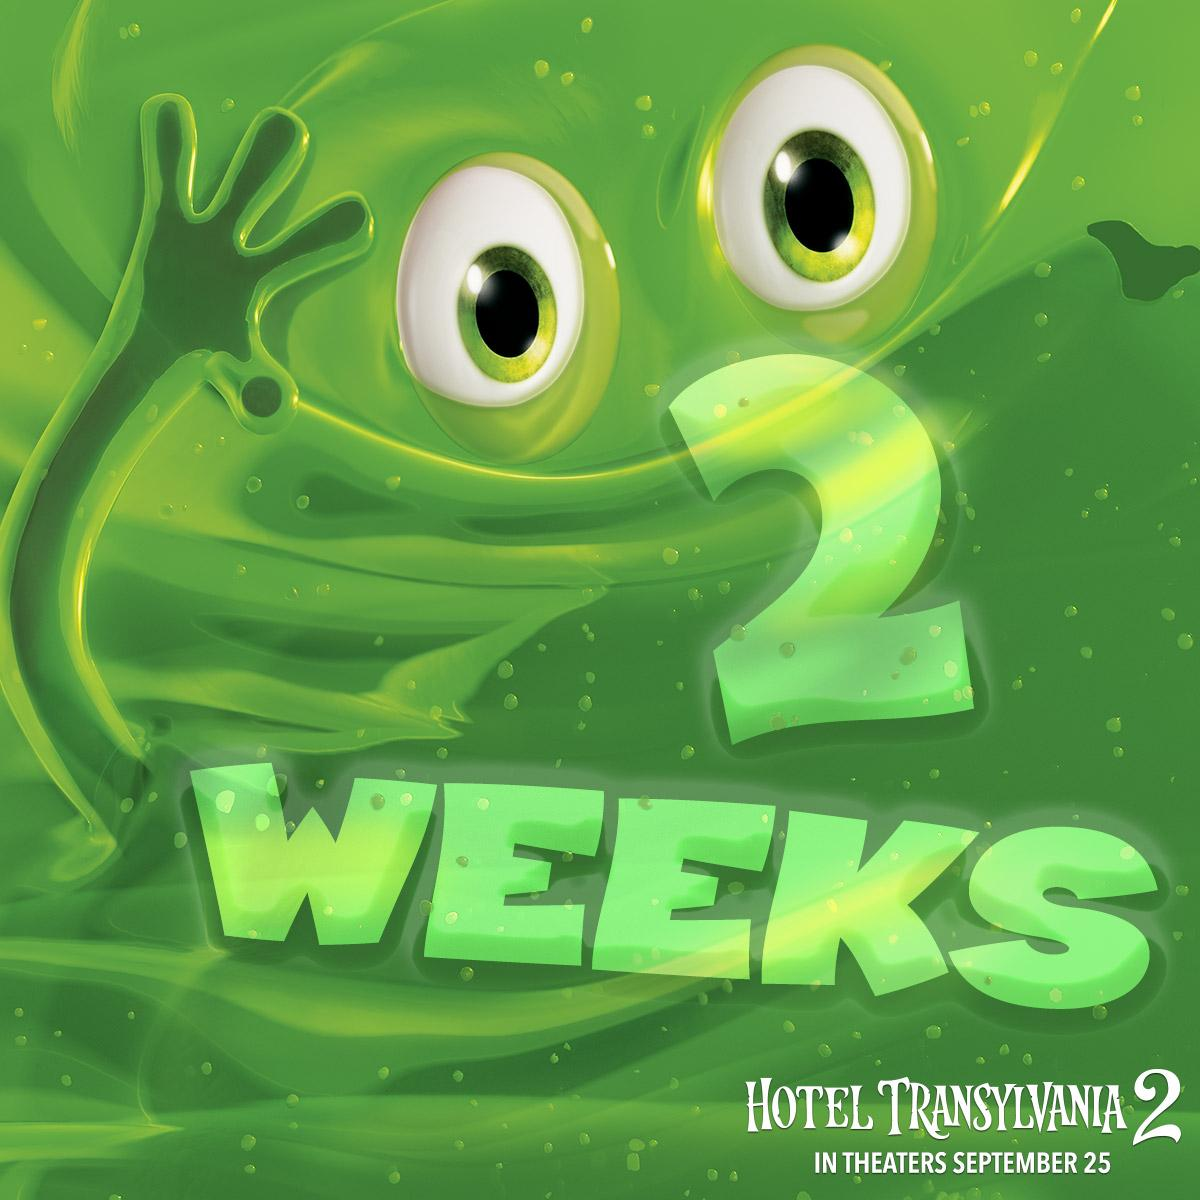 Hotel Transylvania On Twitter 2 WEEKS Until Blobby Swallows Up Your News Feed Dont Miss The HotelT2 Monster Antics In Theaters September 25